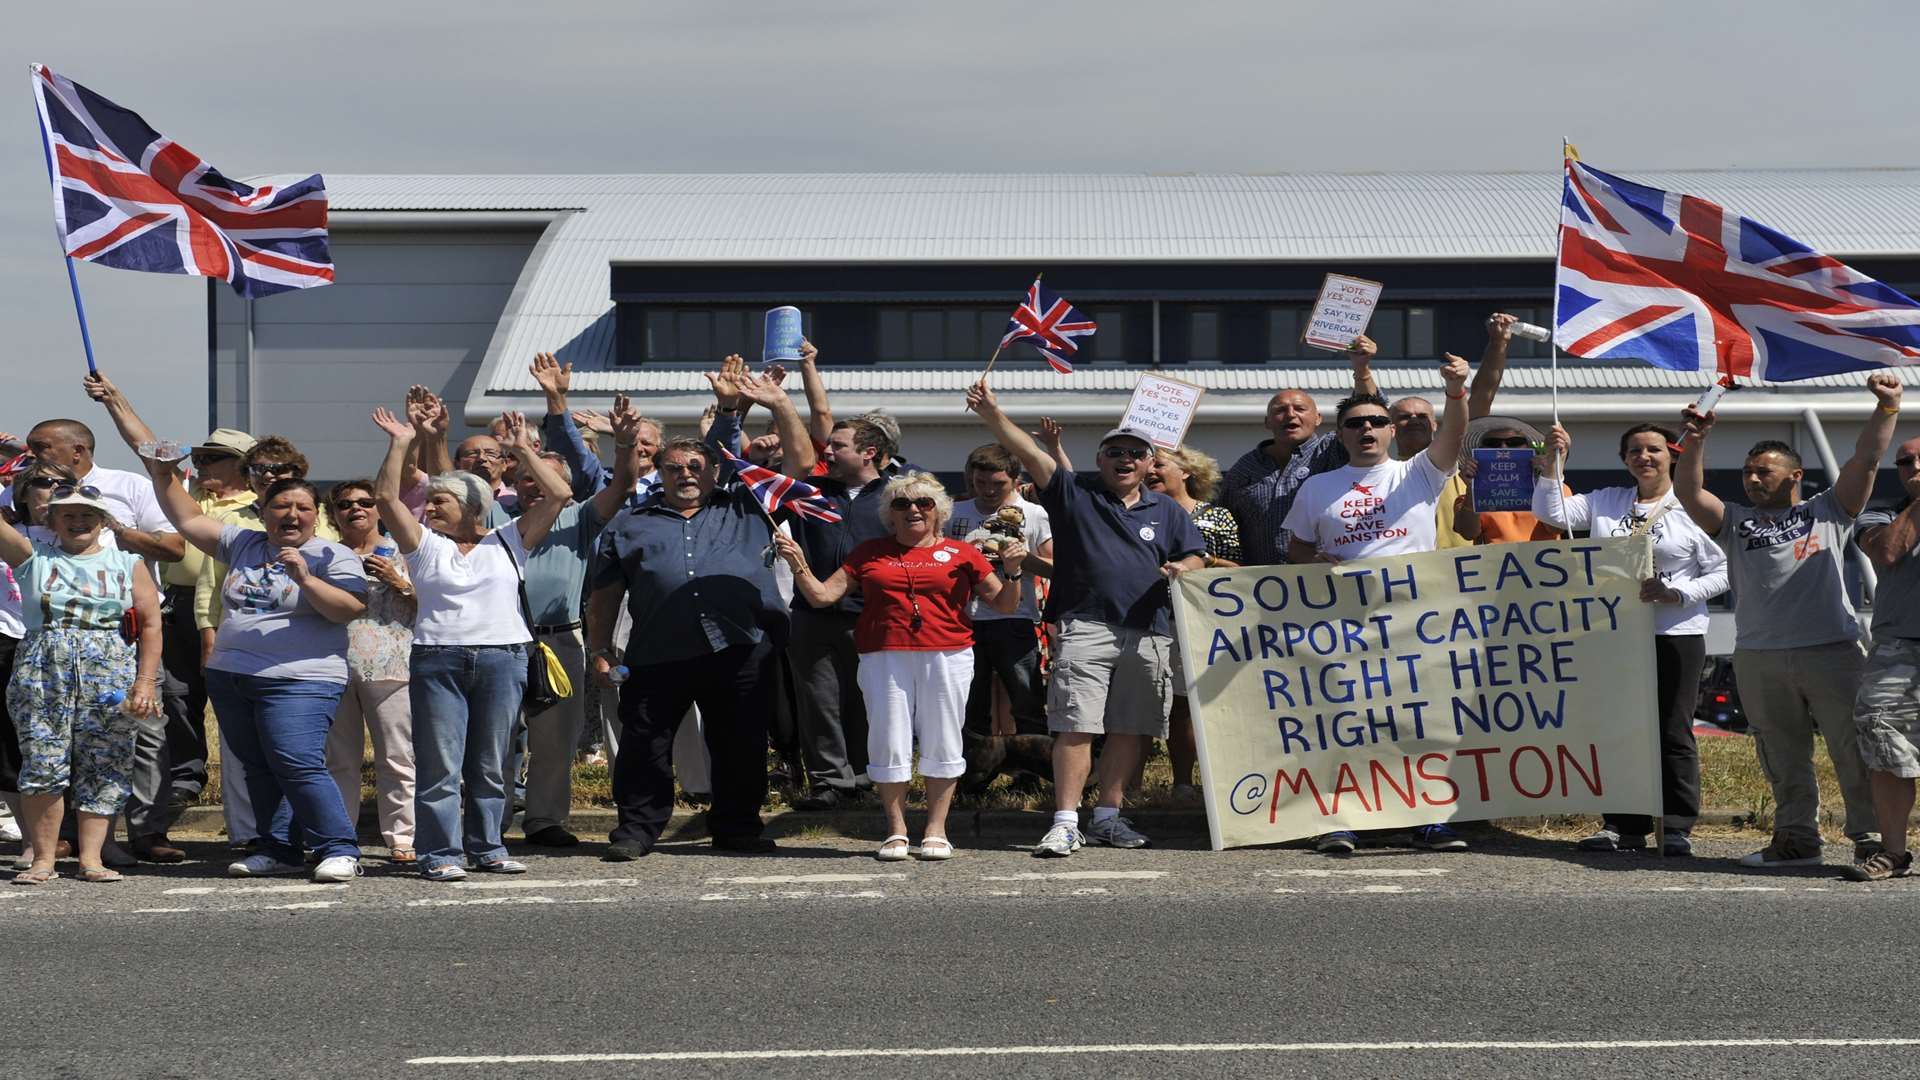 Many campaigners still want Manston to reopen as an airport